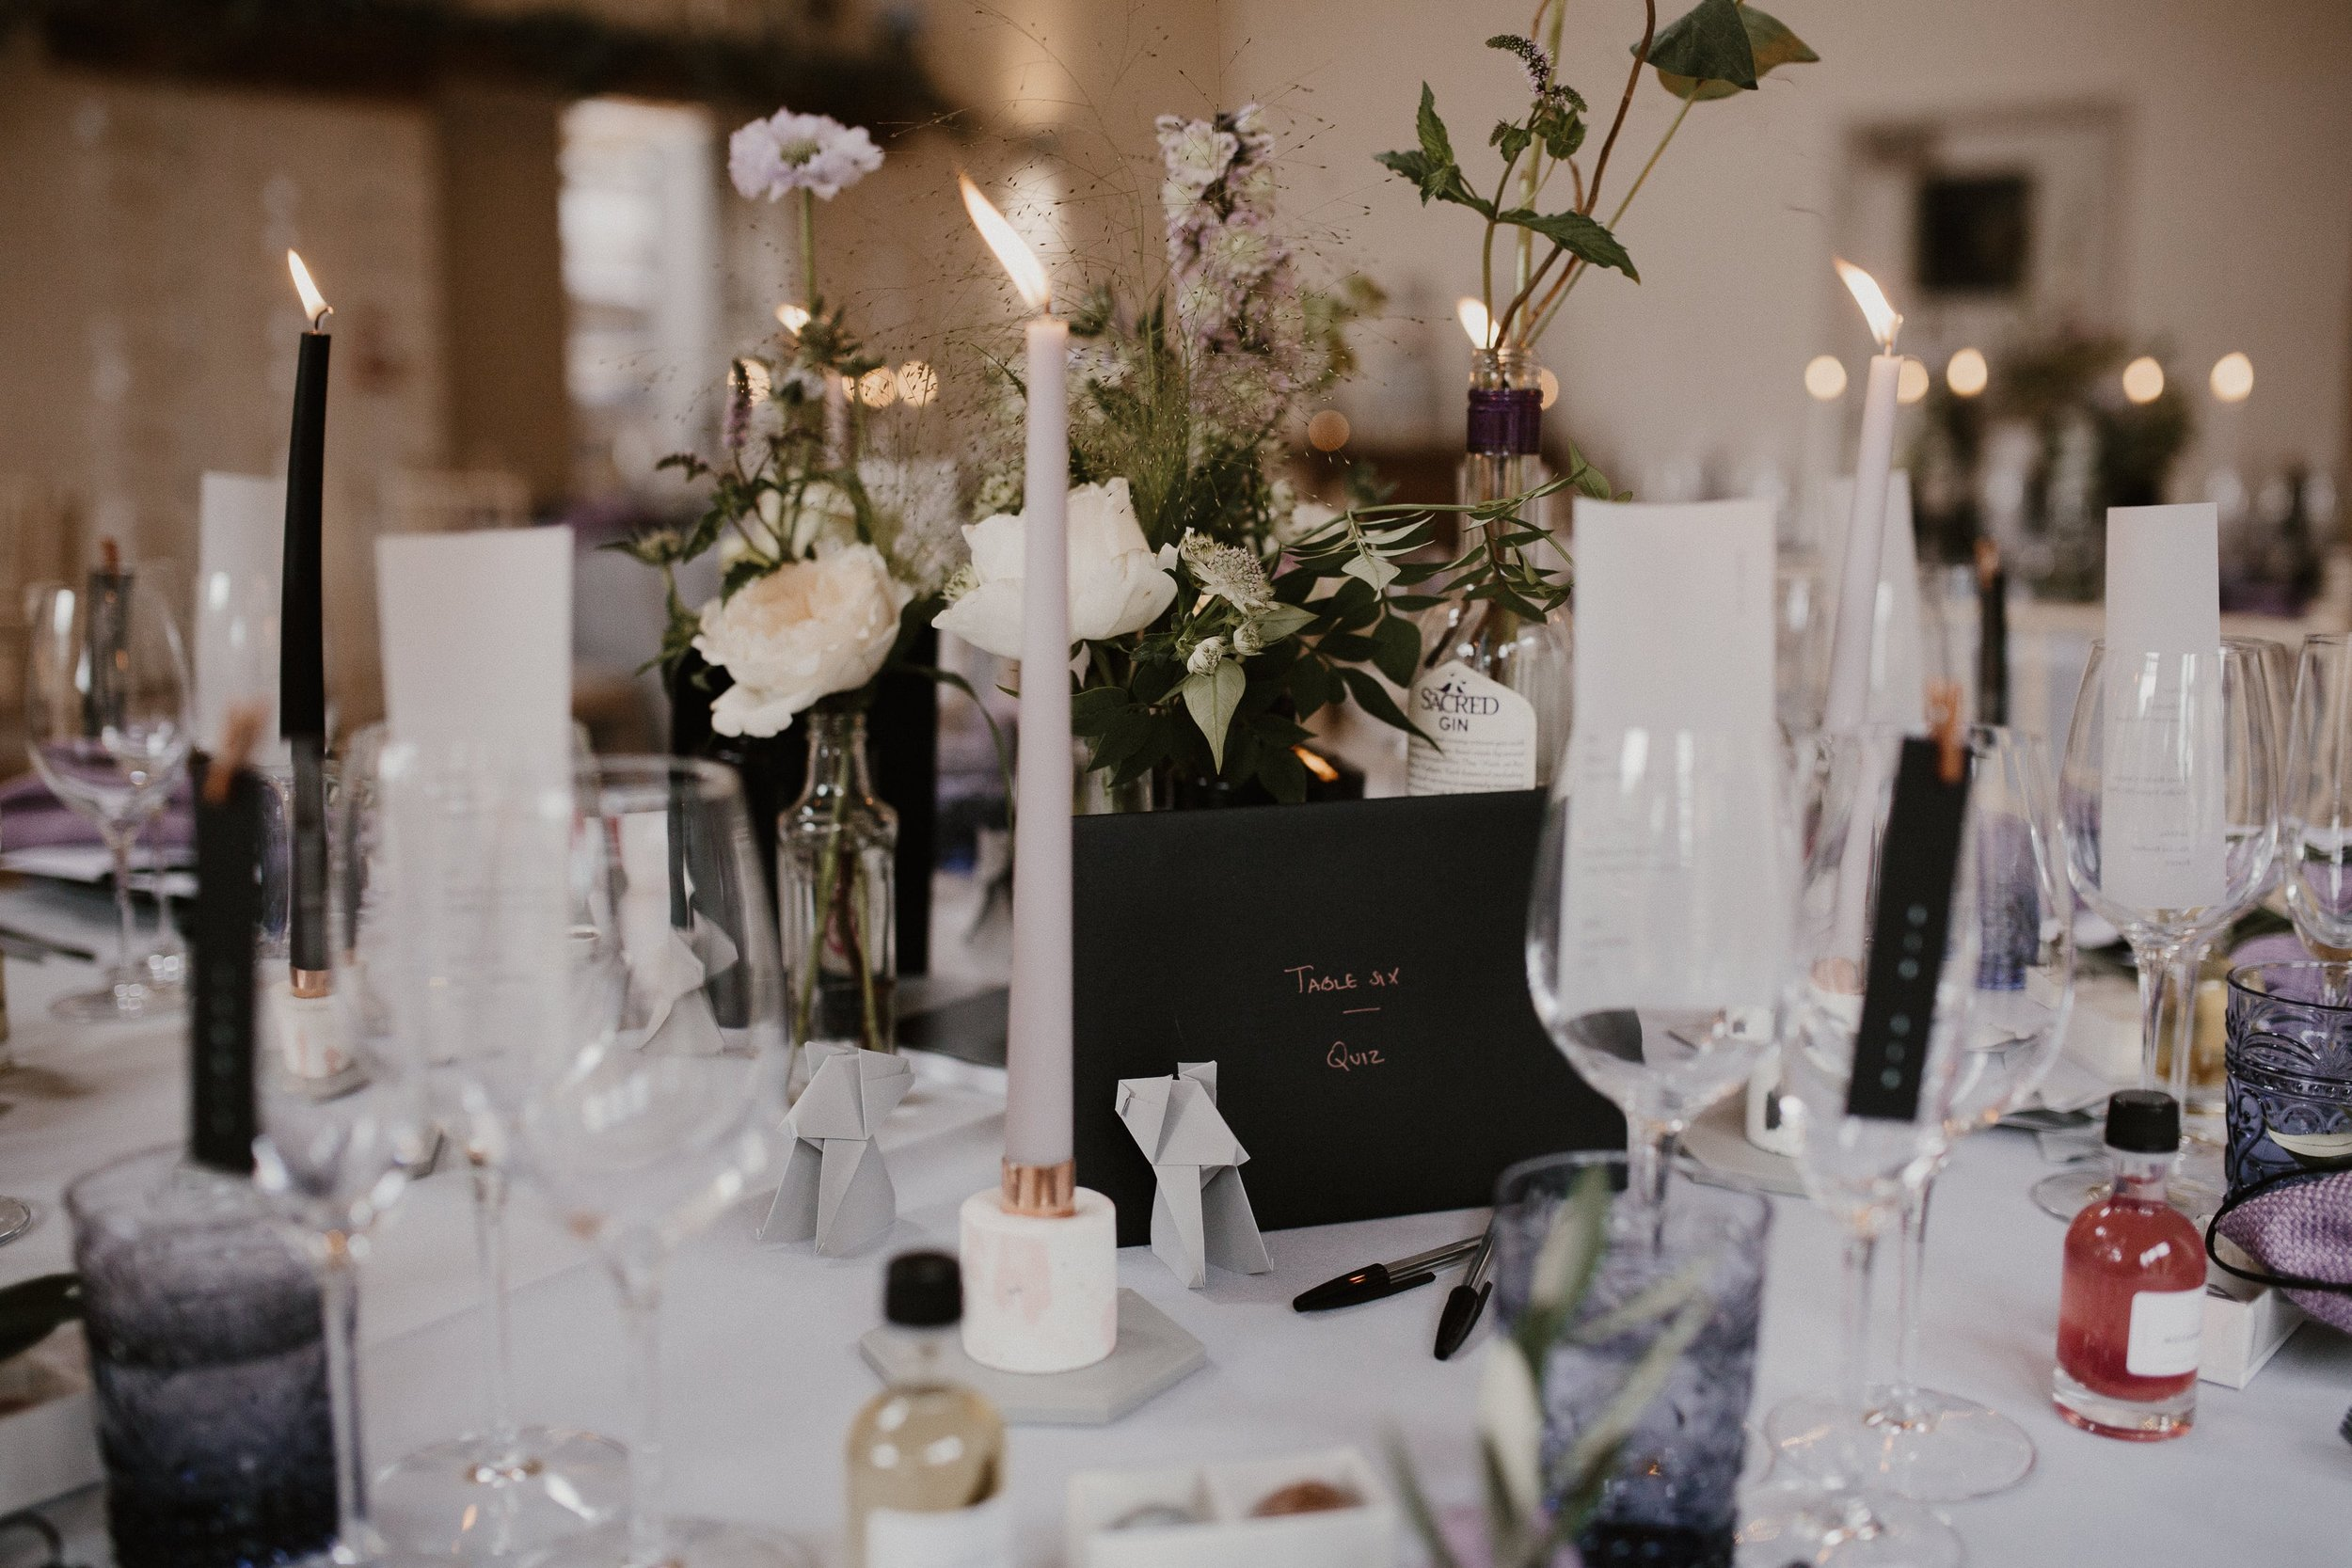 Nat and Tom - 01 - Venue and Details - Sara Lincoln Photography-63-min.jpg